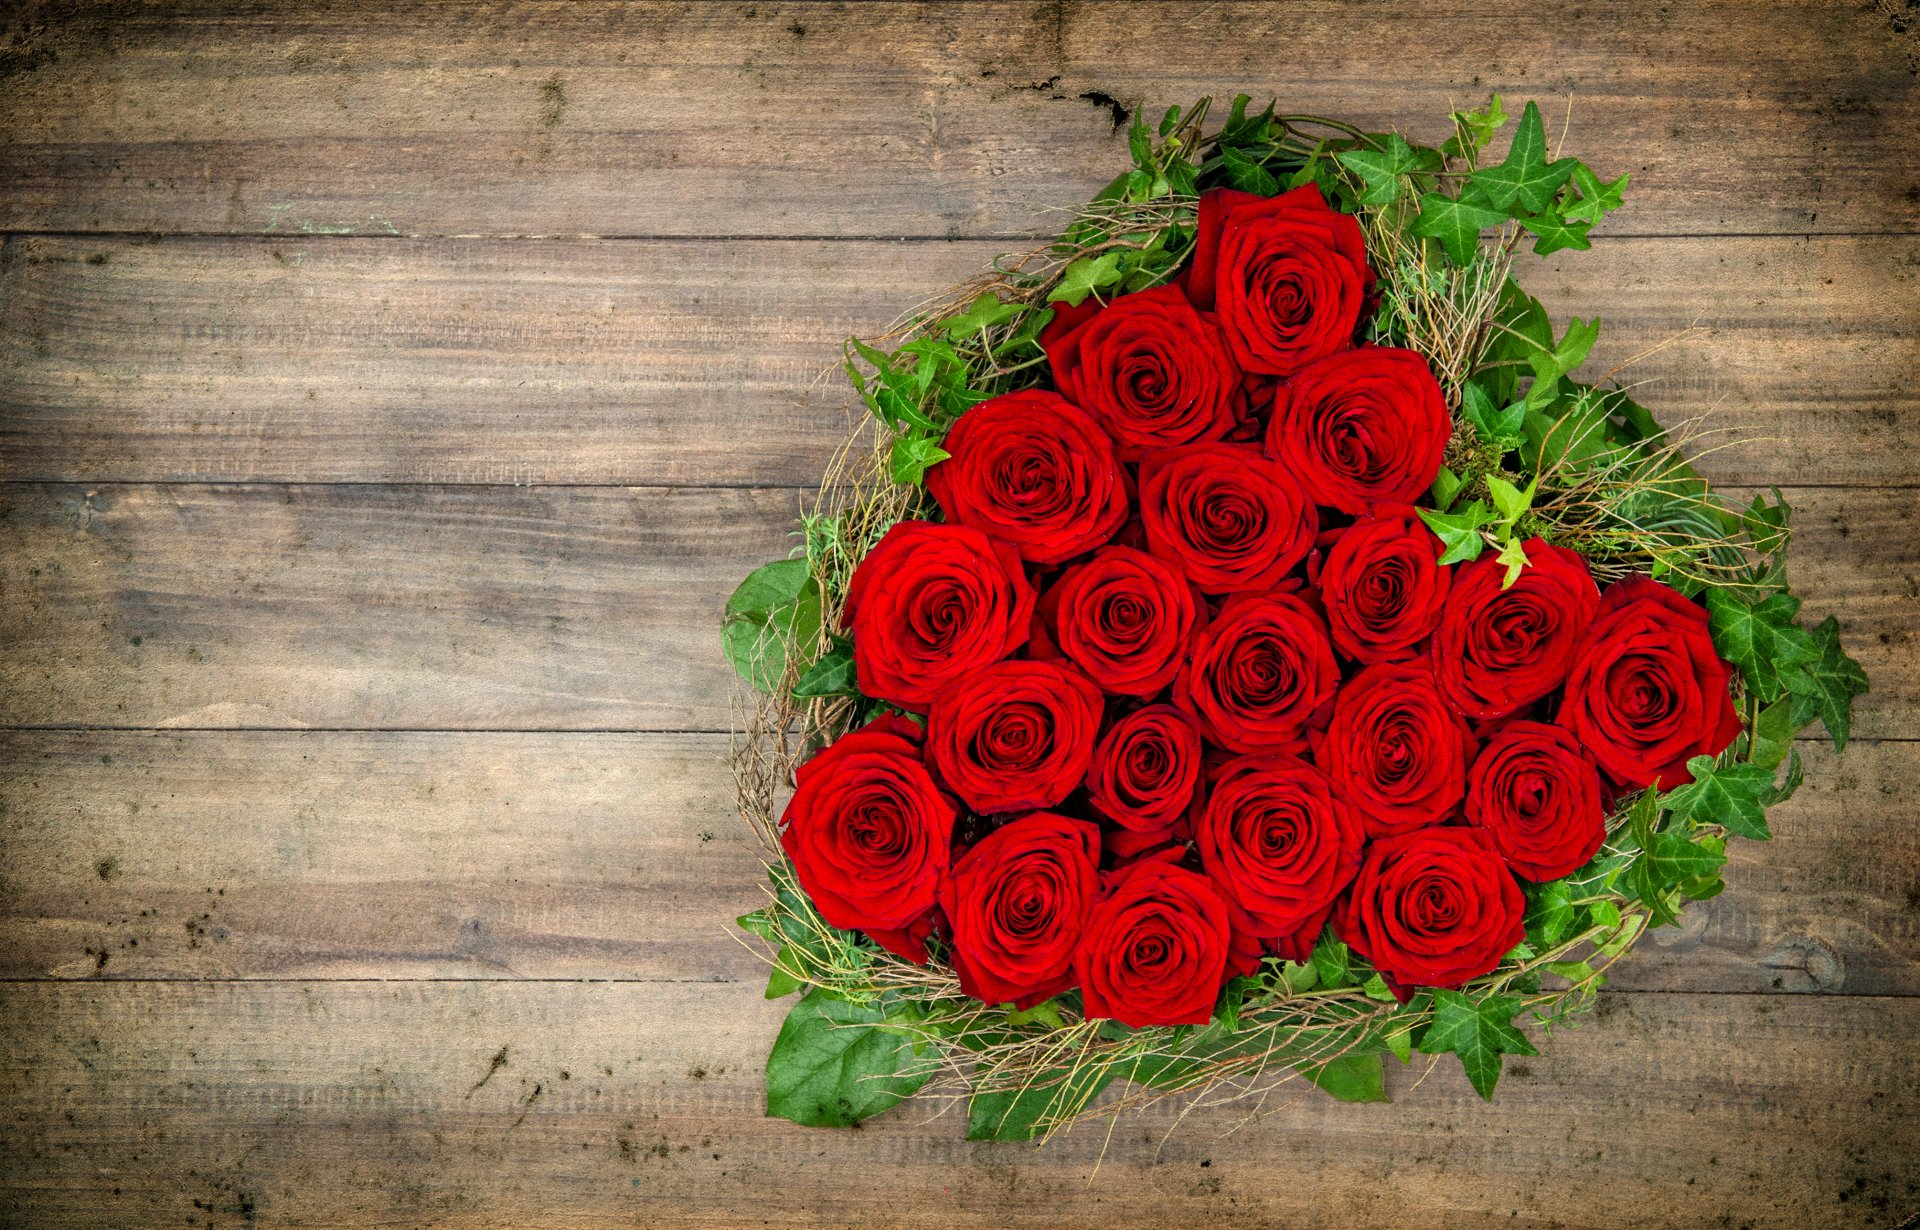 Photography - Love Heart Romantic Rose Red Rose Red Flower Wallpaper